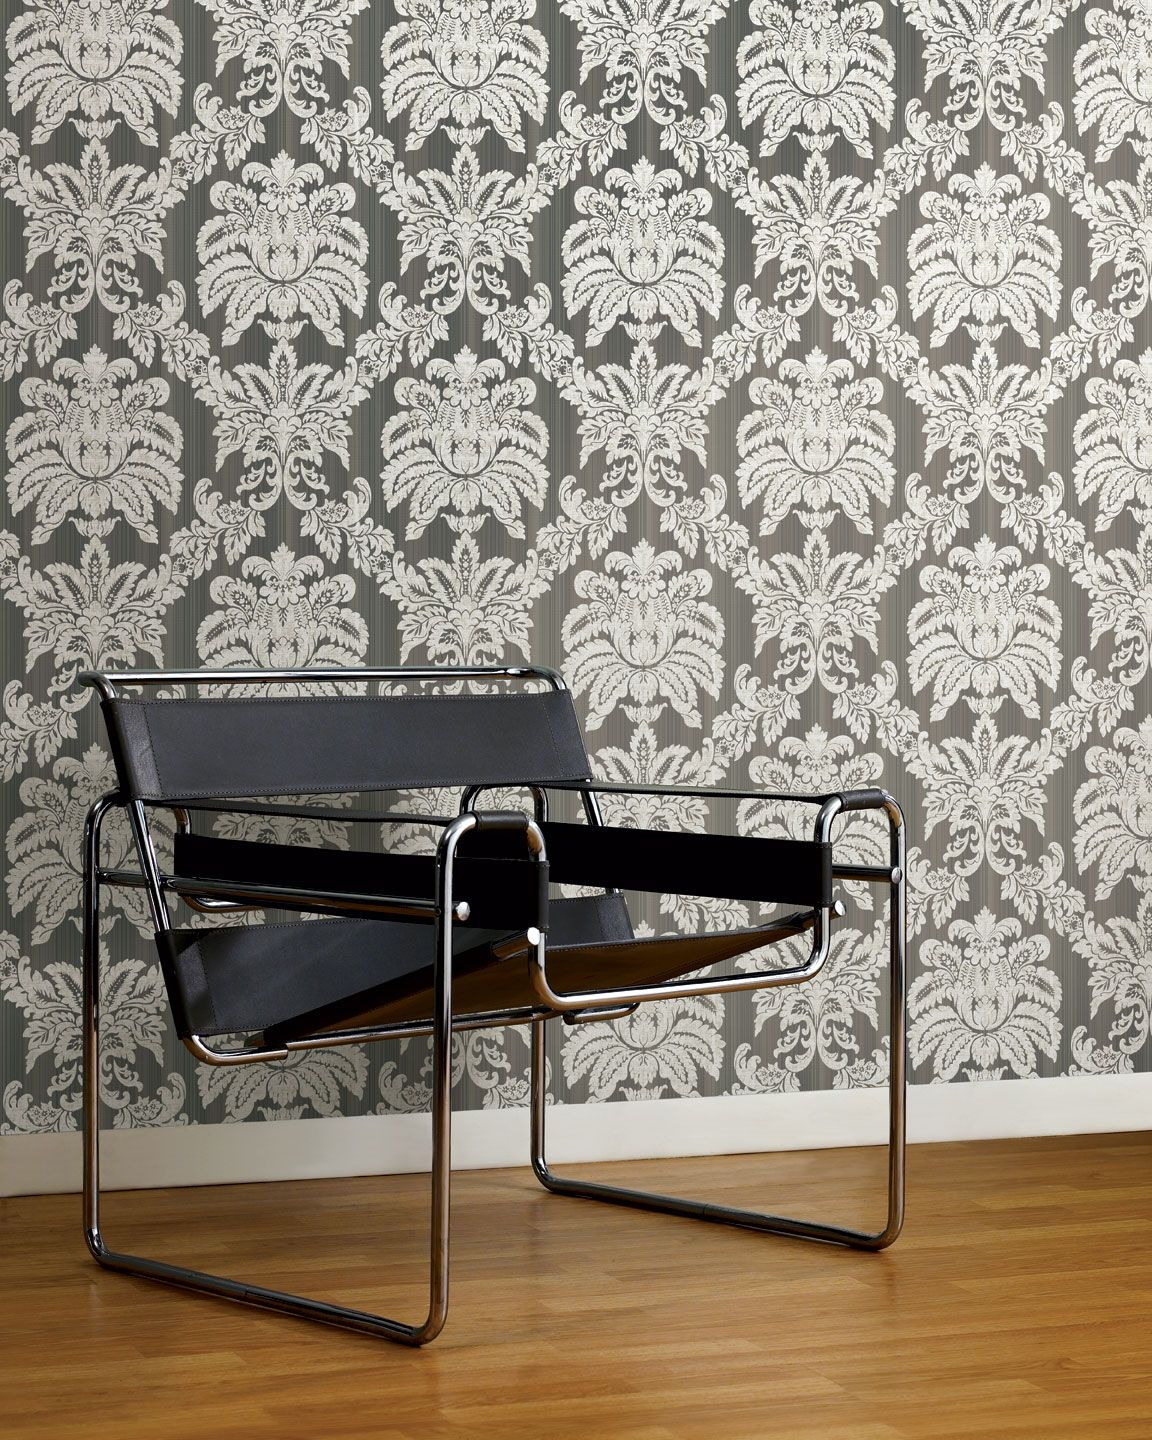 Damask lounge chair - Blend A Classic Damask Wallpaper With A Retro Chair Like The Wassily Lounge Chair For An